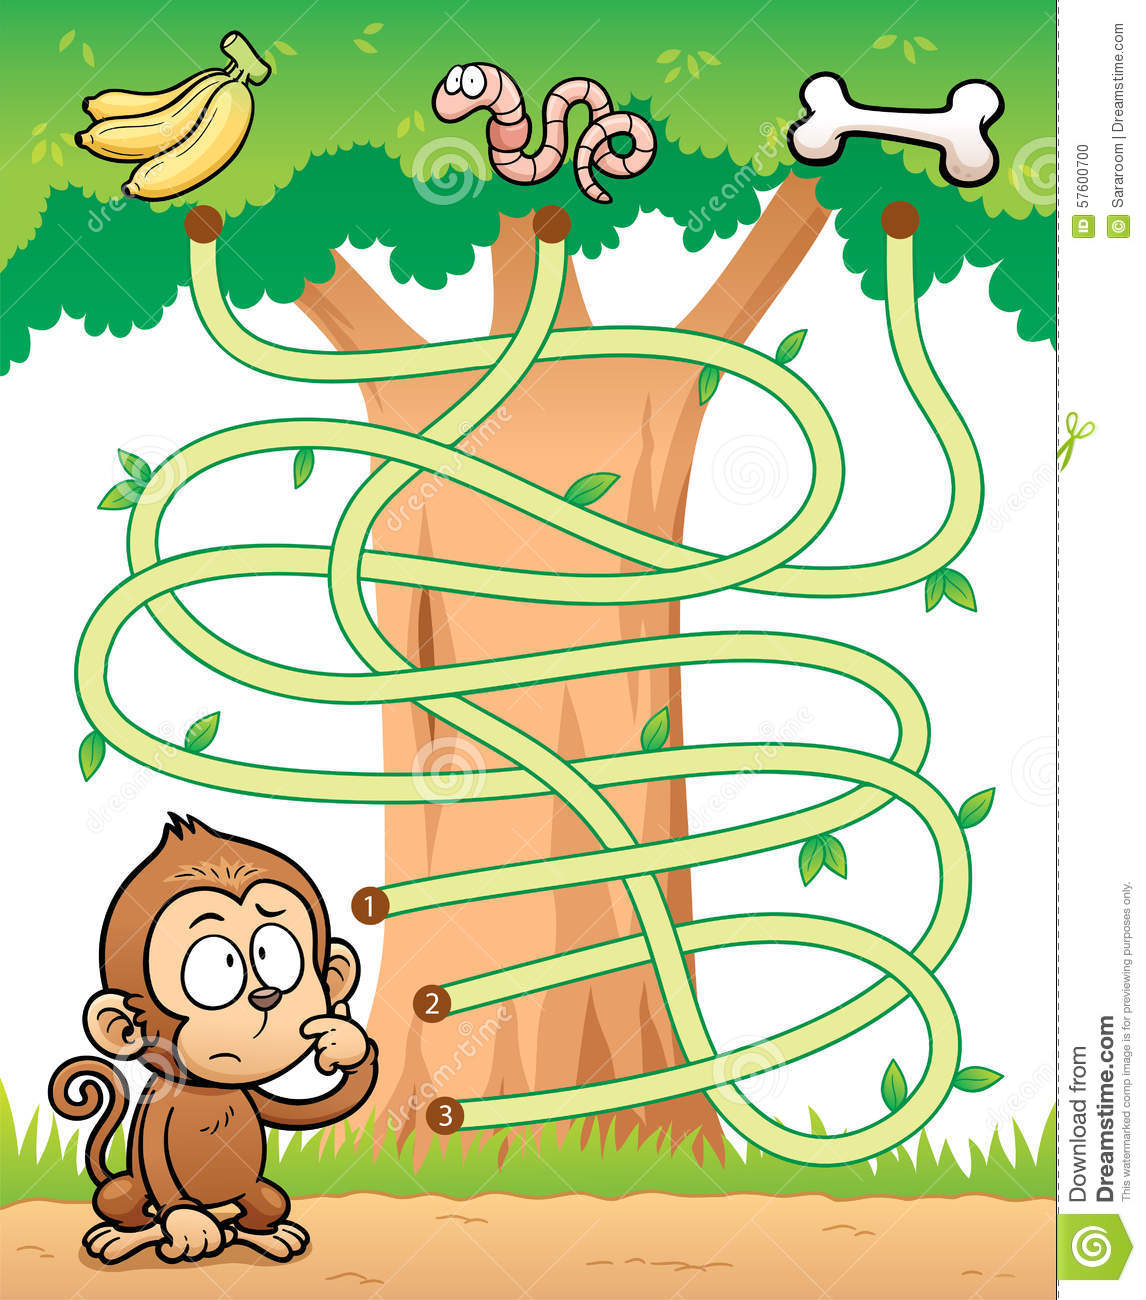 Education Maze Game Illustration De Vecteur Illustration